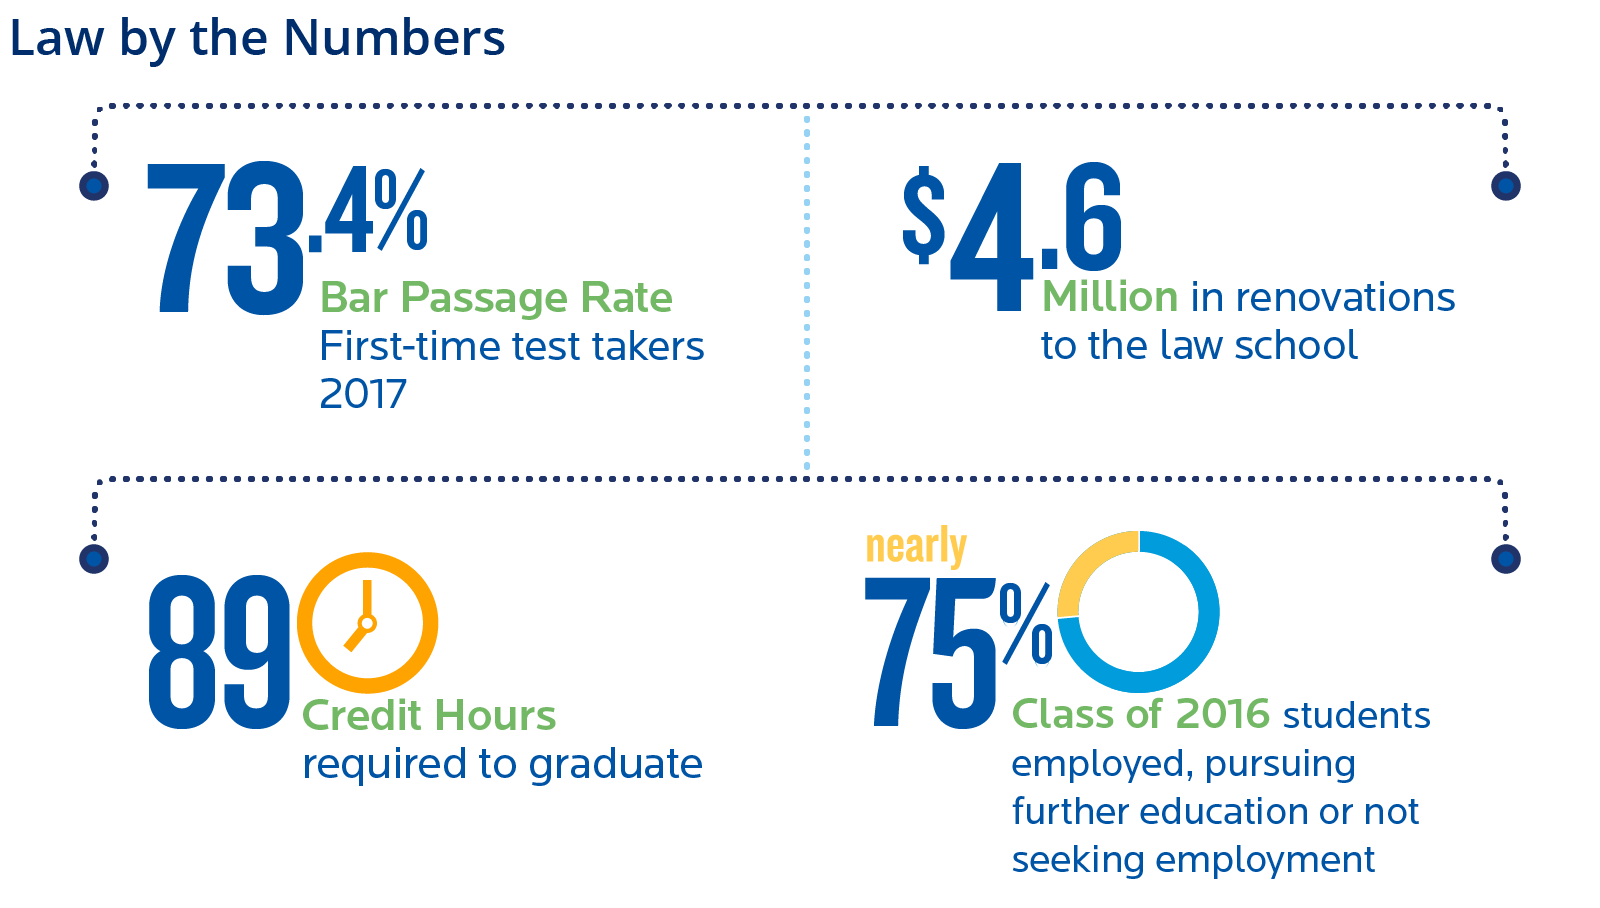 Creighton University School of Law -by the numbers